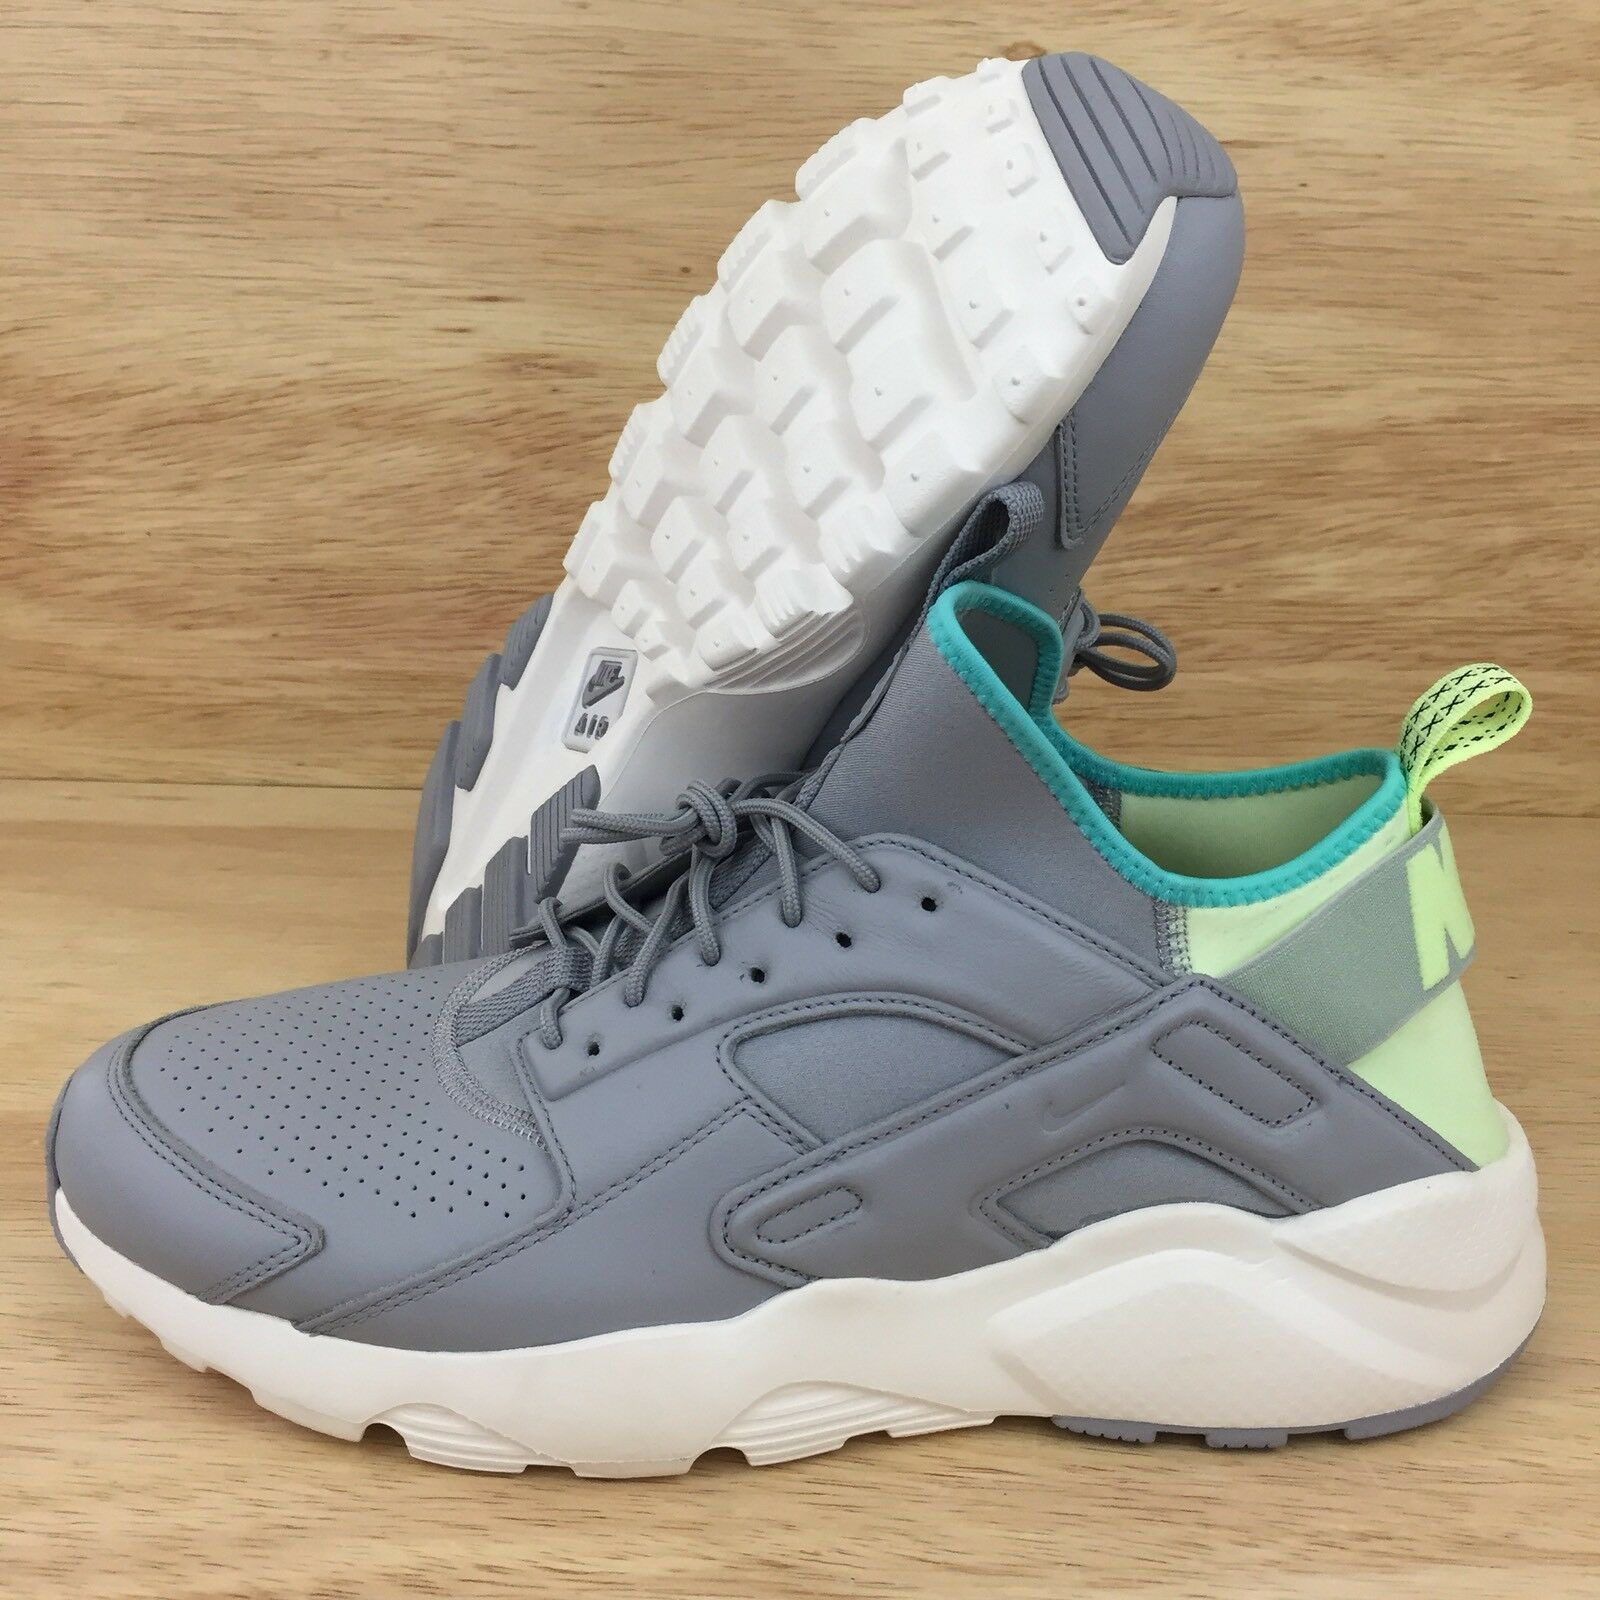 New Nike Air Huarache Run Ultra Mens Shoes Size 13 Sneakers 875841 002